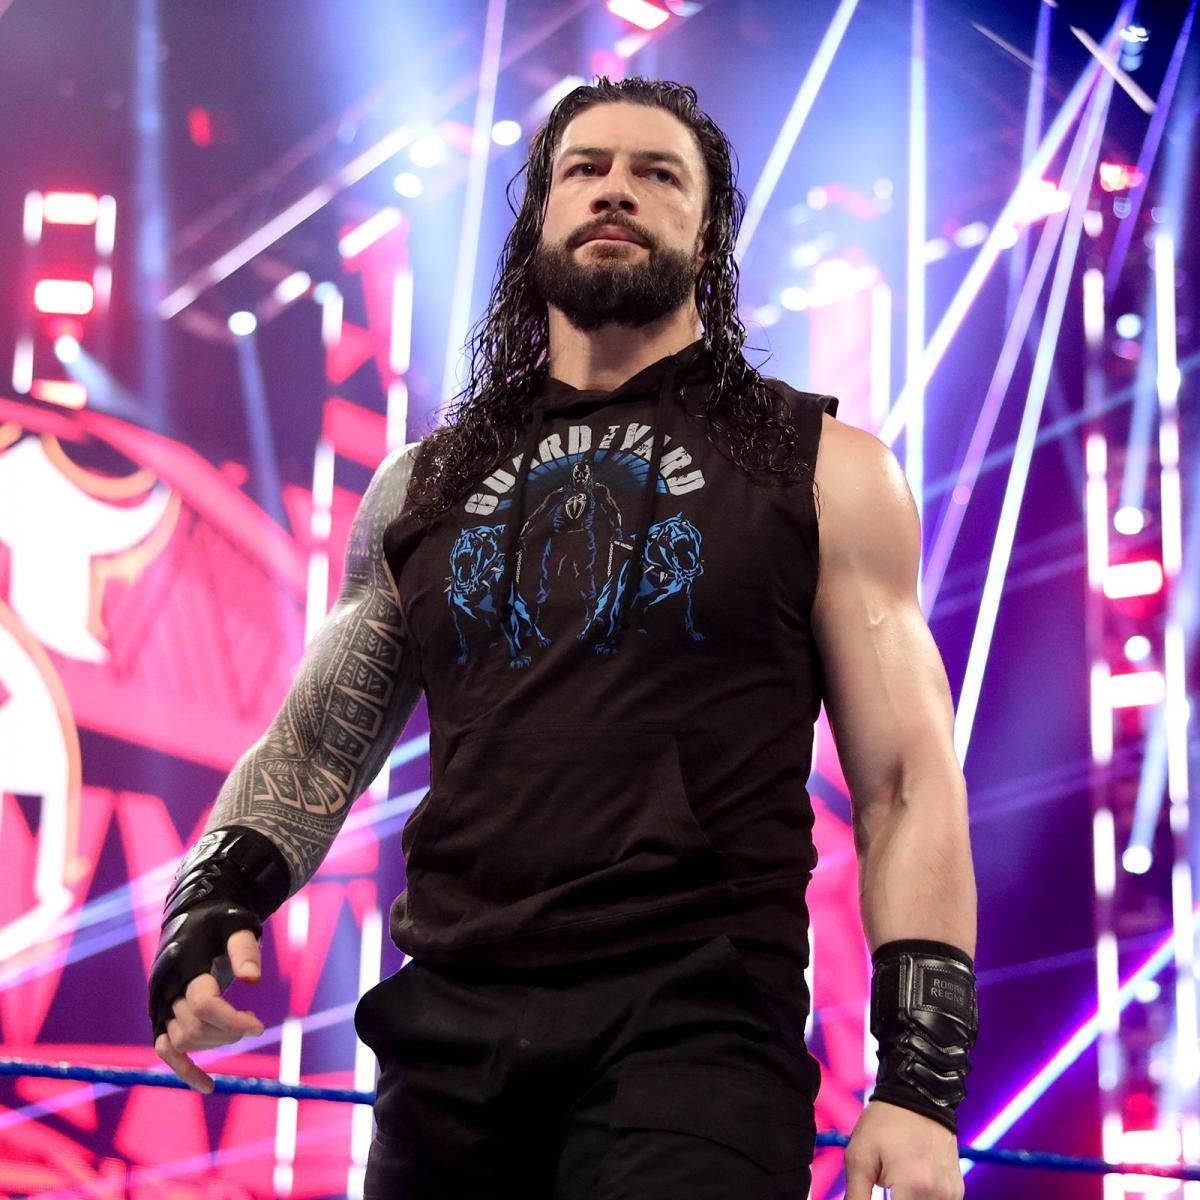 Roman Reigns Shares Workout Video Hinting He's Ready For WWE Return 2